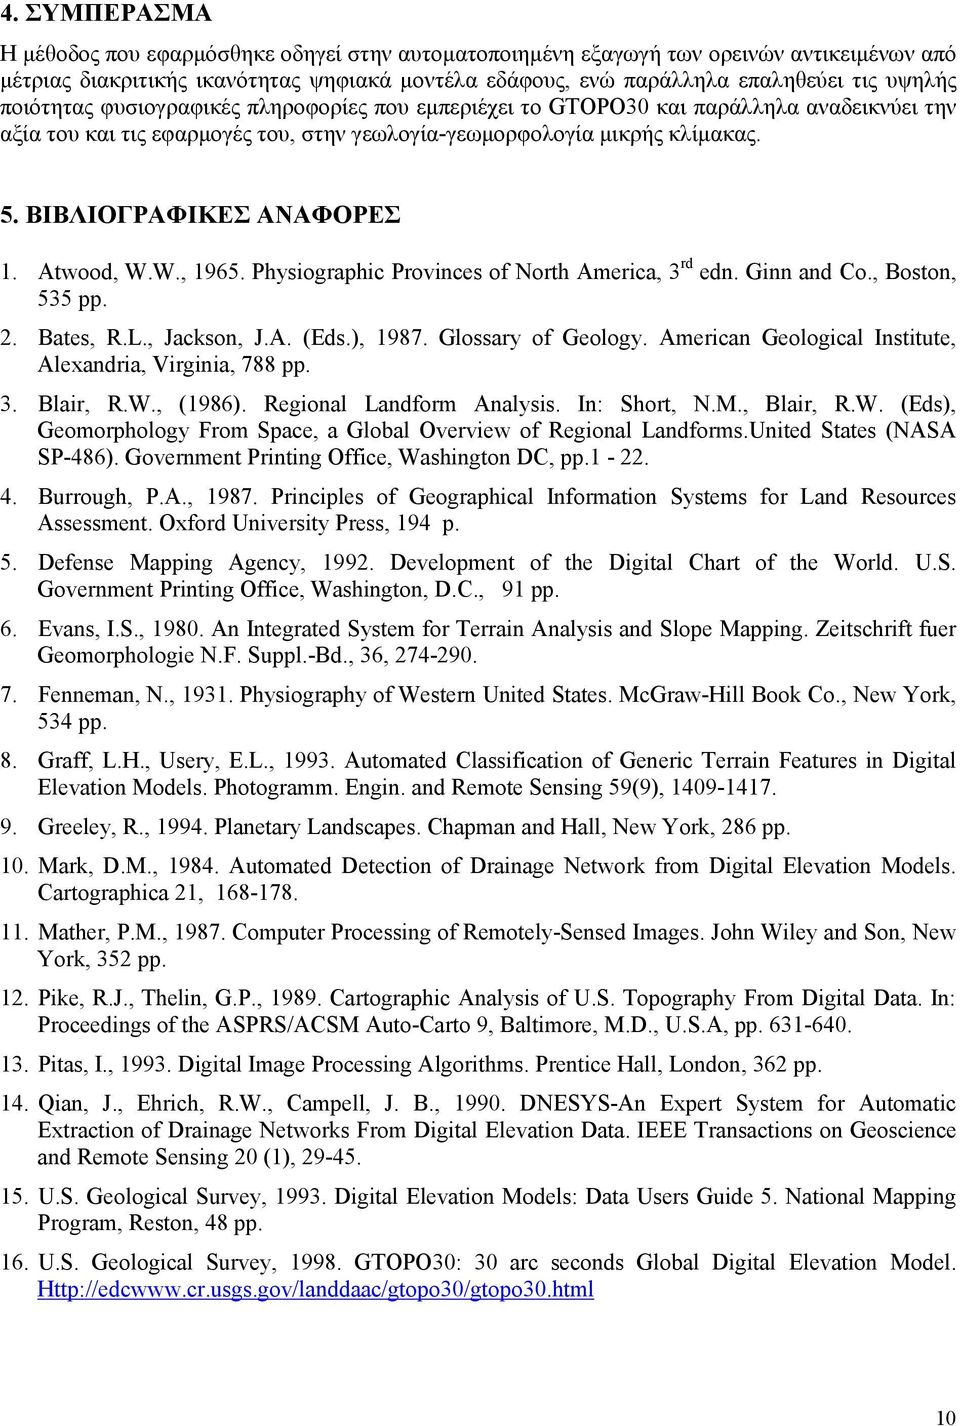 Atwood, W.W., 1965. Physiographic Provinces of North America, 3 rd edn. Ginn and Co., Boston, 535 pp. 2. Bates, R.L., Jackson, J.A. (Eds.), 1987. Glossary of Geology.